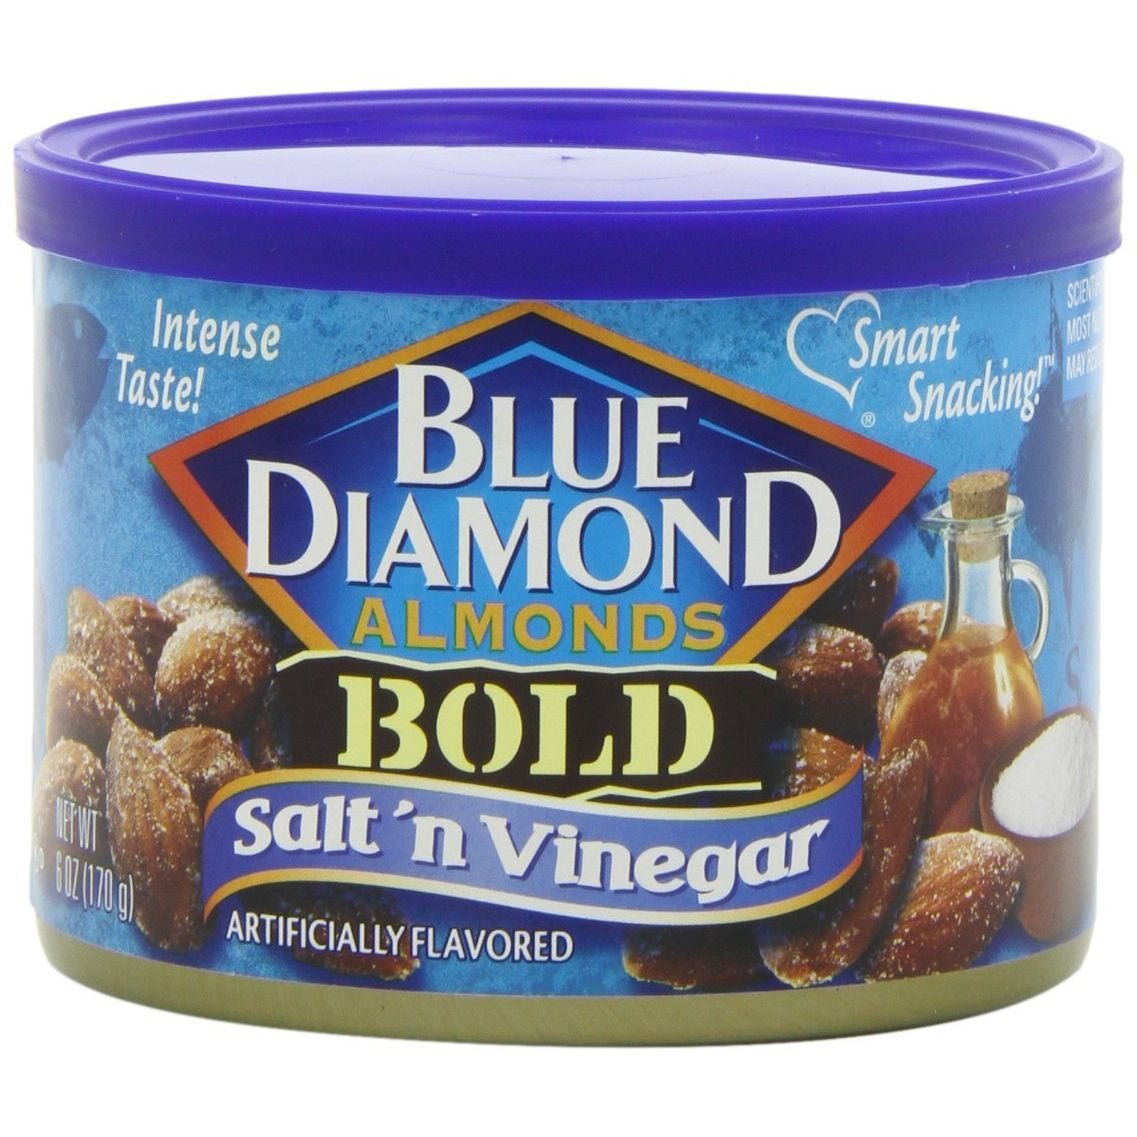 Blue Diamond Almonds Bold Salt & Vinegar, 6 Oz (Pack of 12)